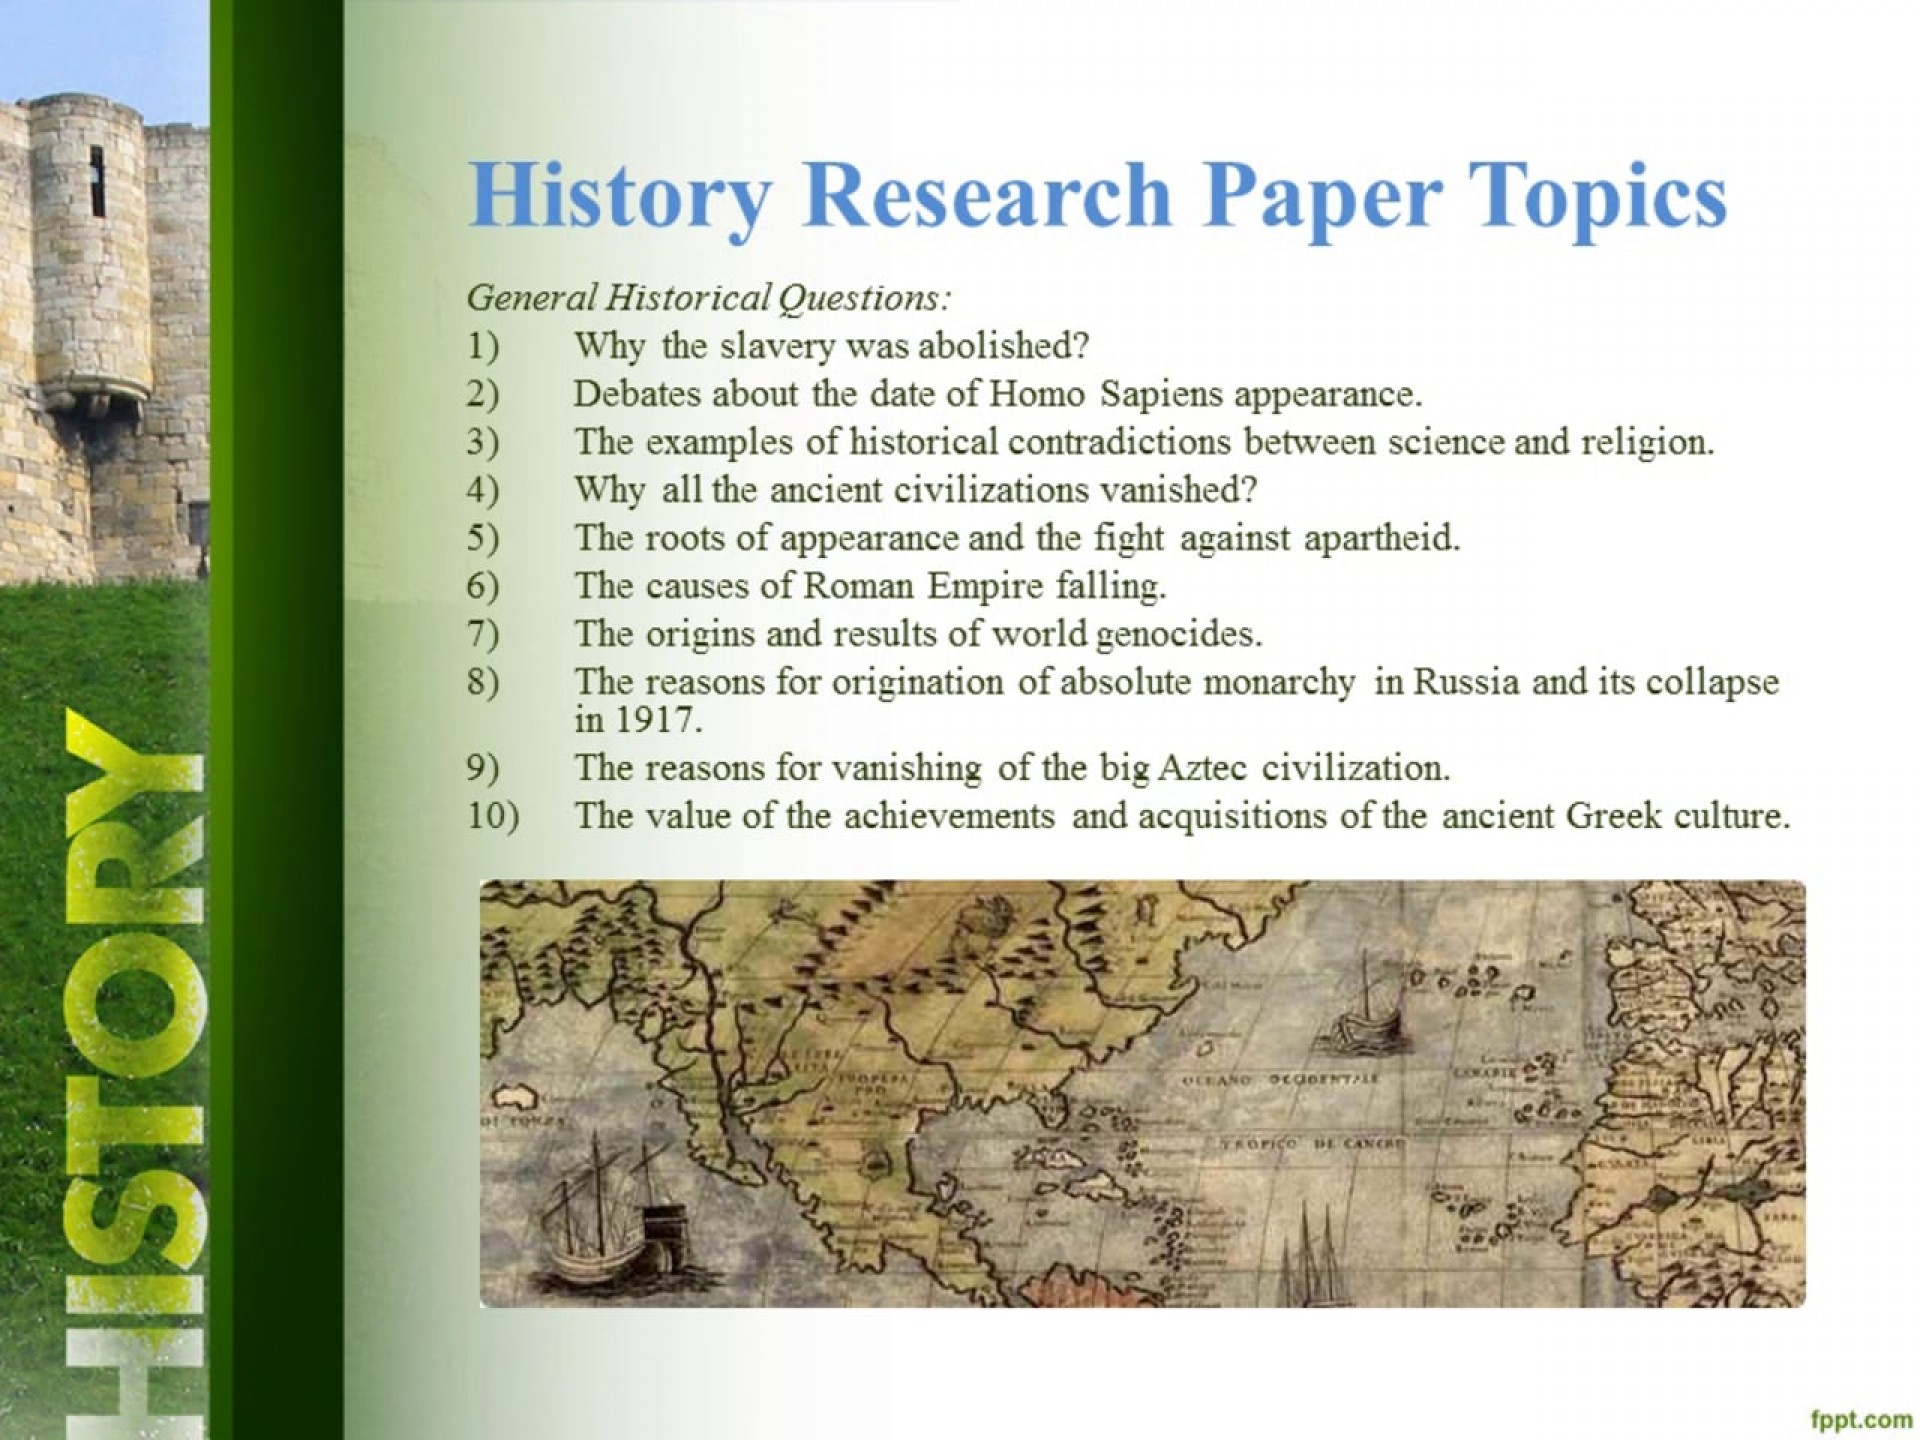 001 530442879 1280x960 Research Paper Good Topics For American History Unforgettable Papers Us 1920